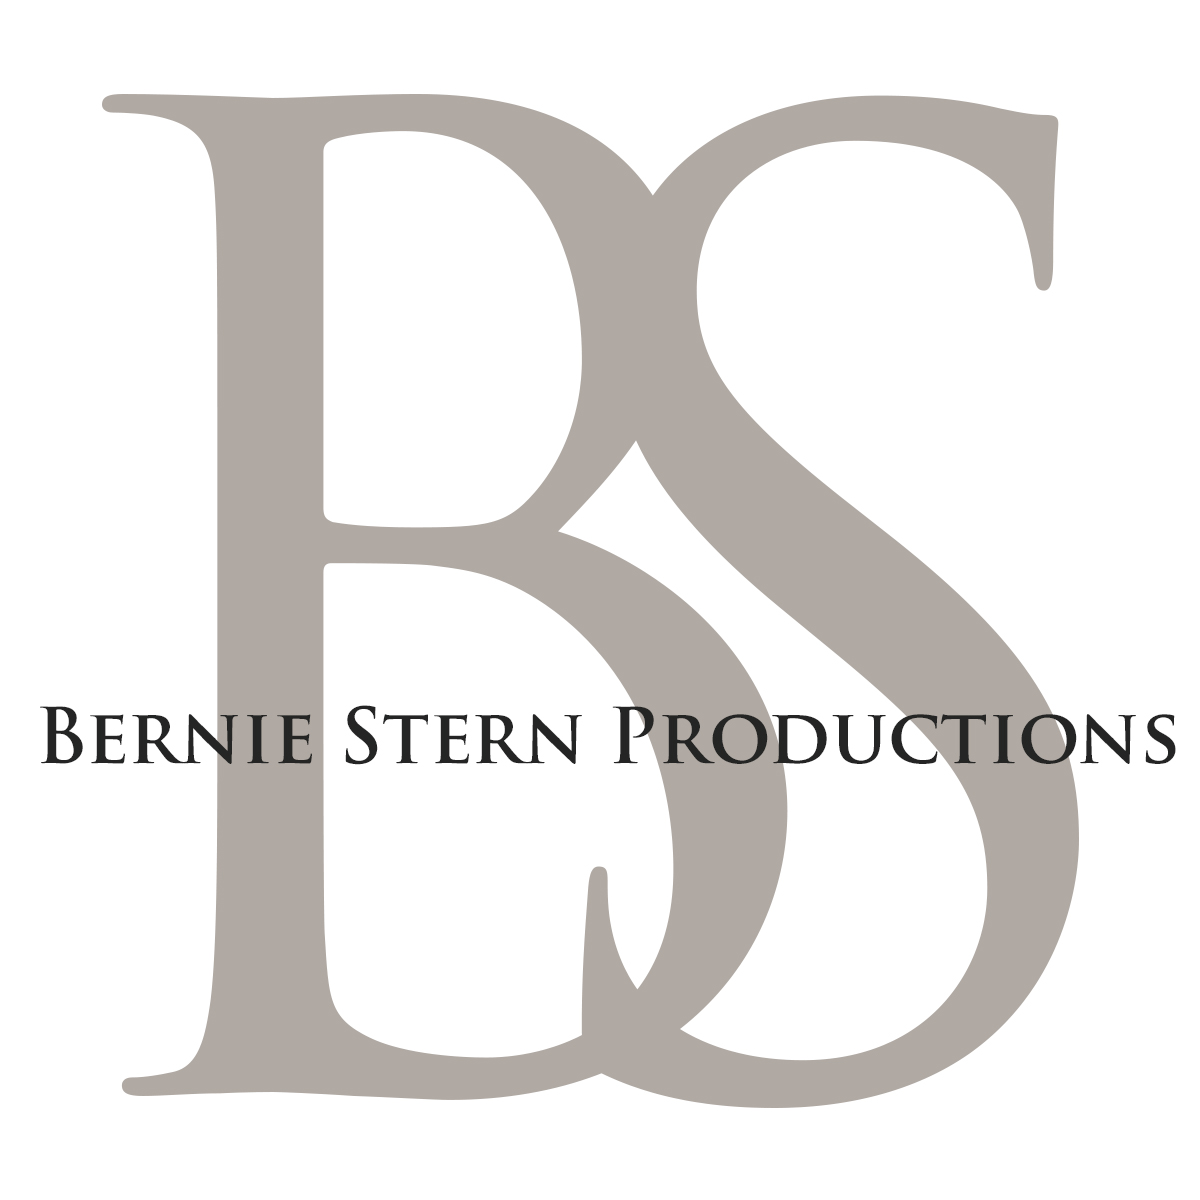 Bernie Stern Productions